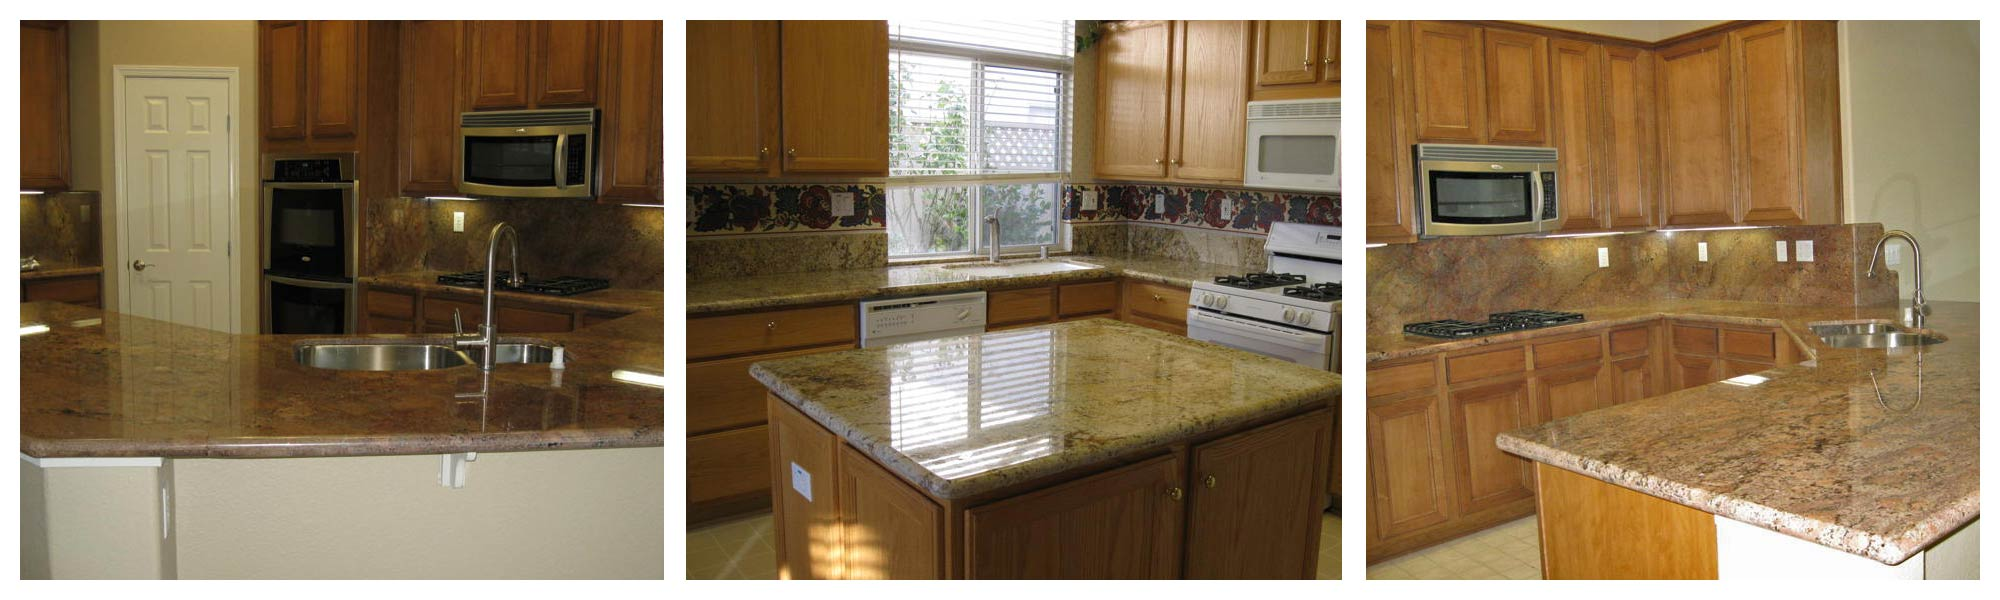 Kitchen Cabinet and Tile and Granite and Countertop of Laminated wood